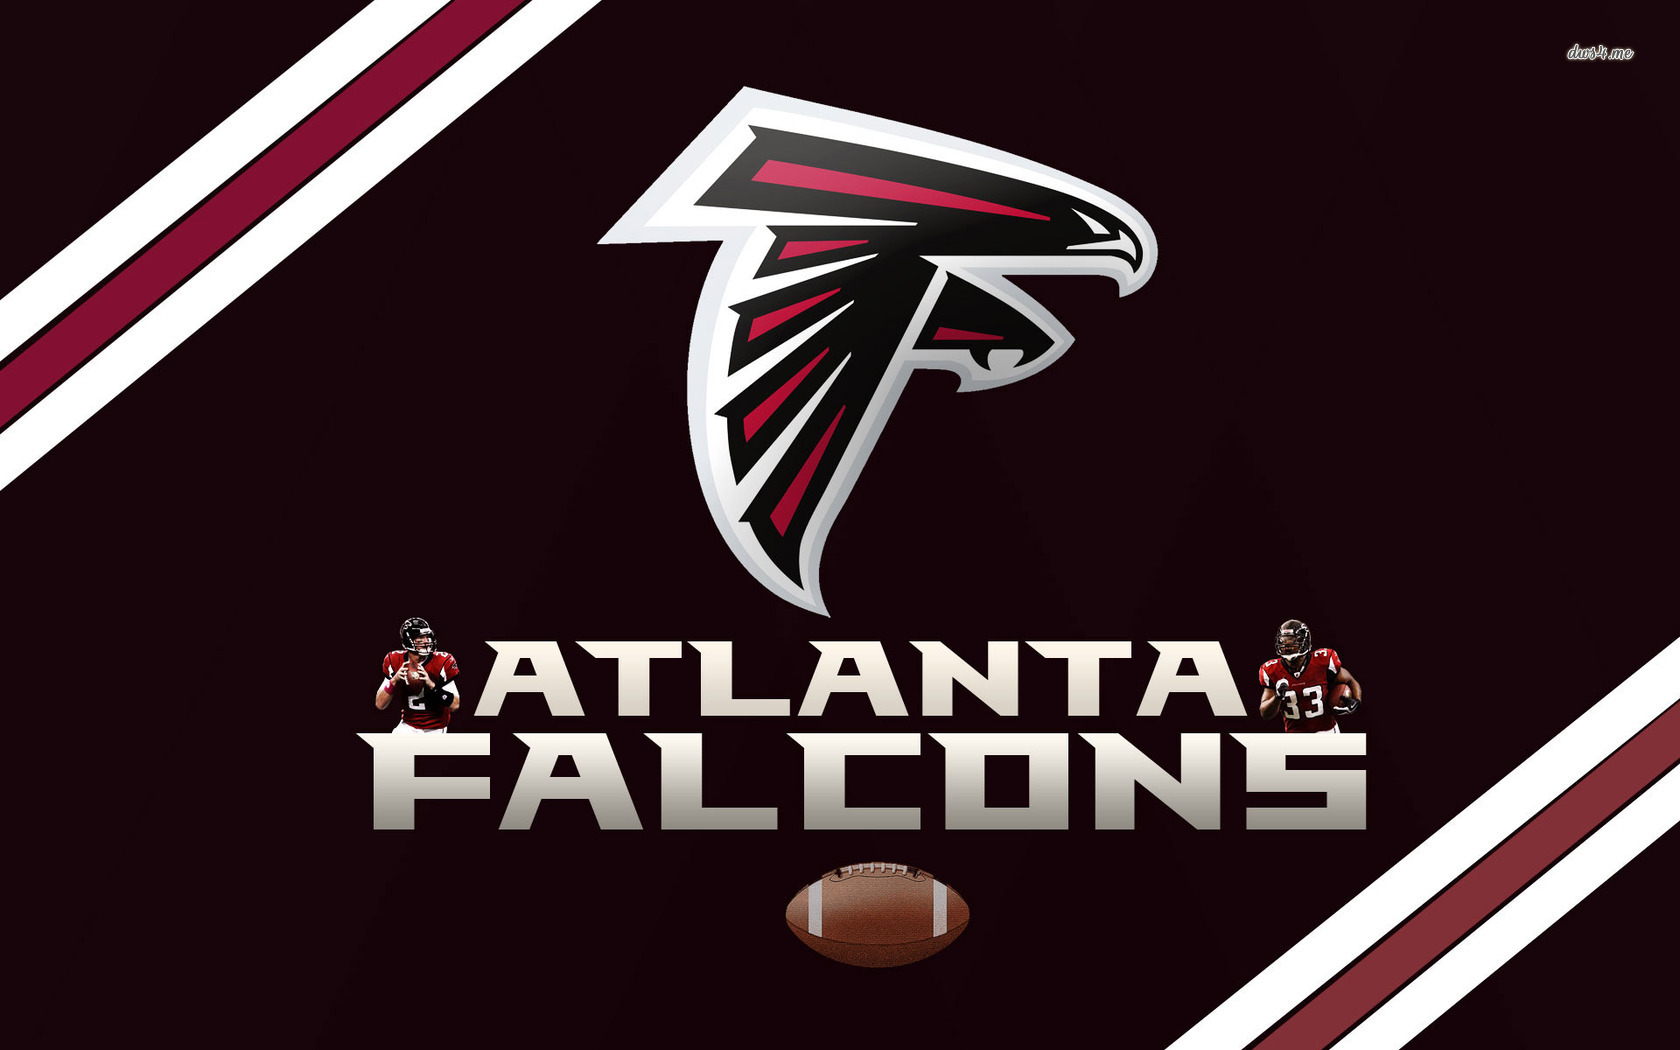 Atlanta Falcons Images: 16 Atlanta Falcons Wallpapers